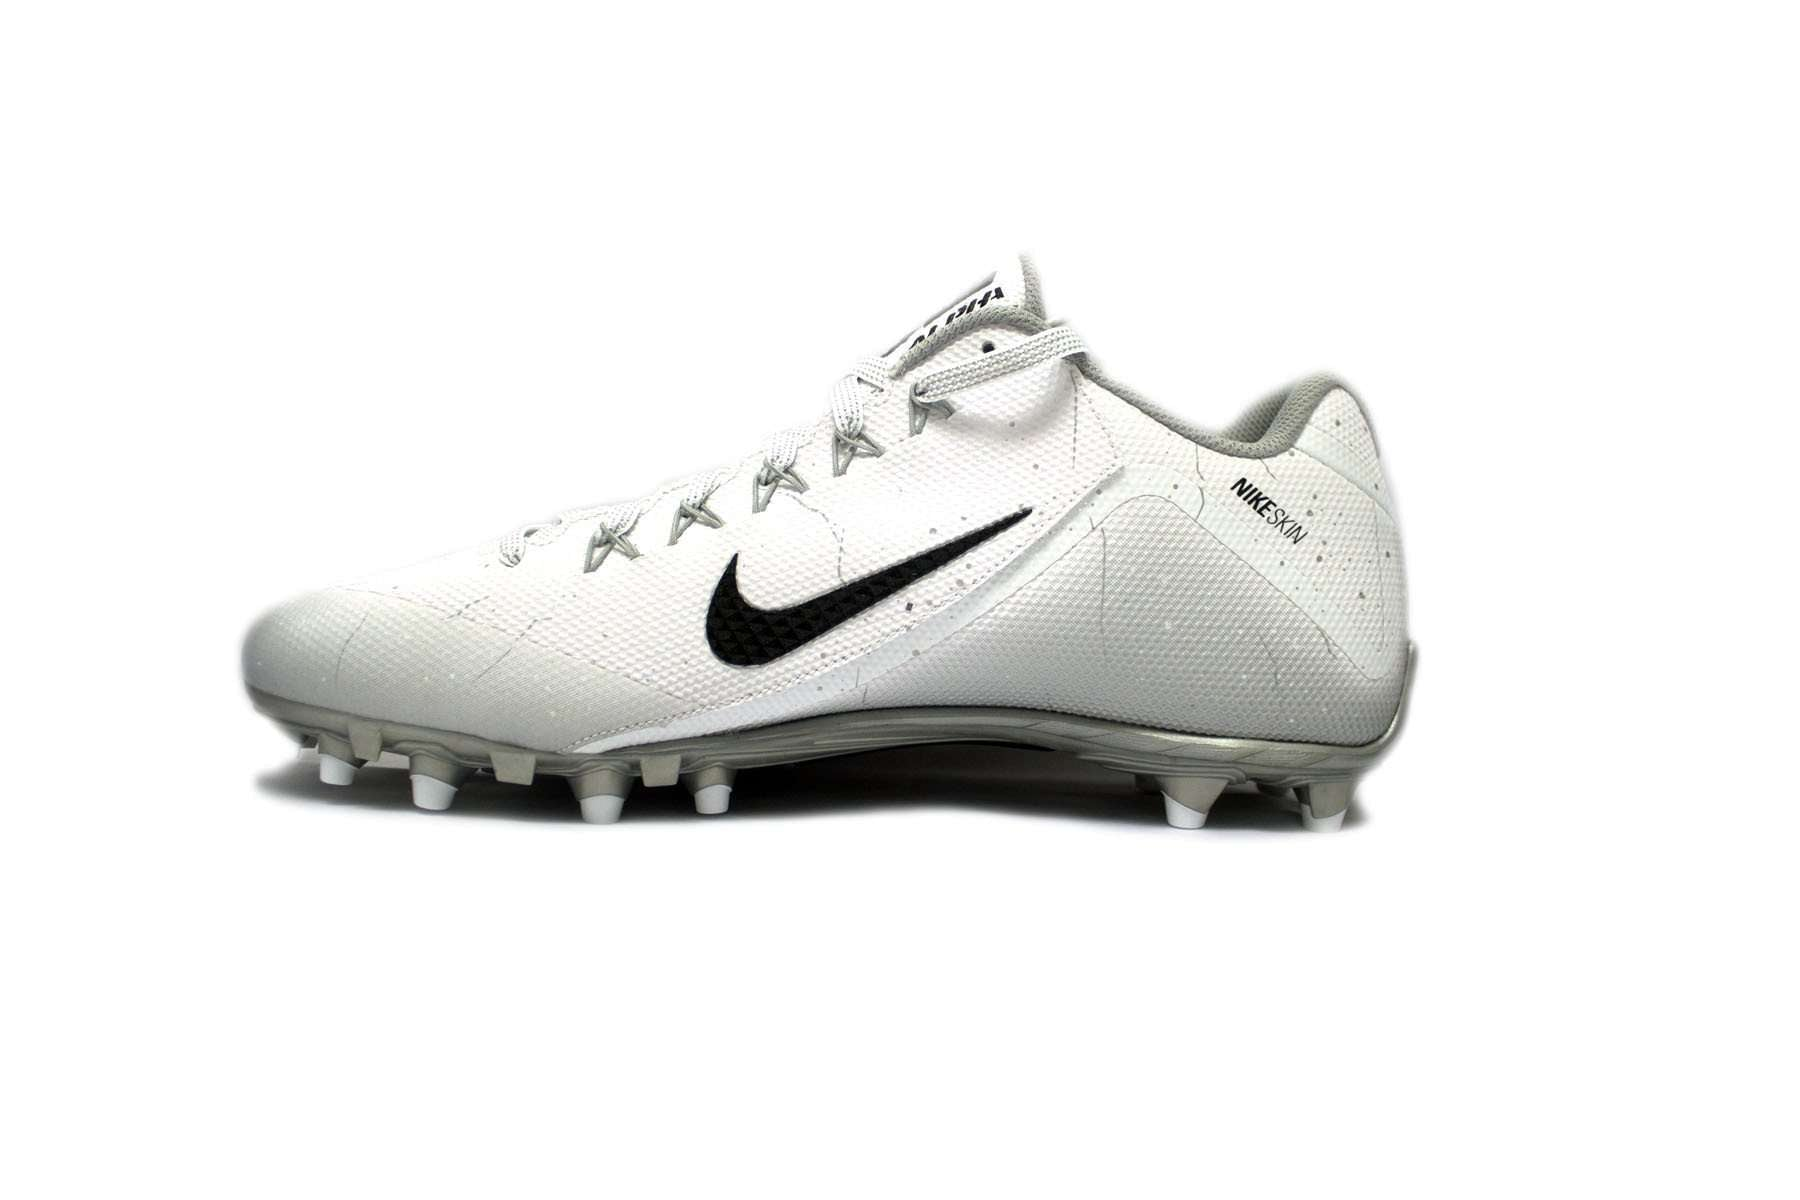 wholesale dealer 412cb 1cc08 ... Nike Alpha Pro 2 TD Football Cleats - League Outfitters ...